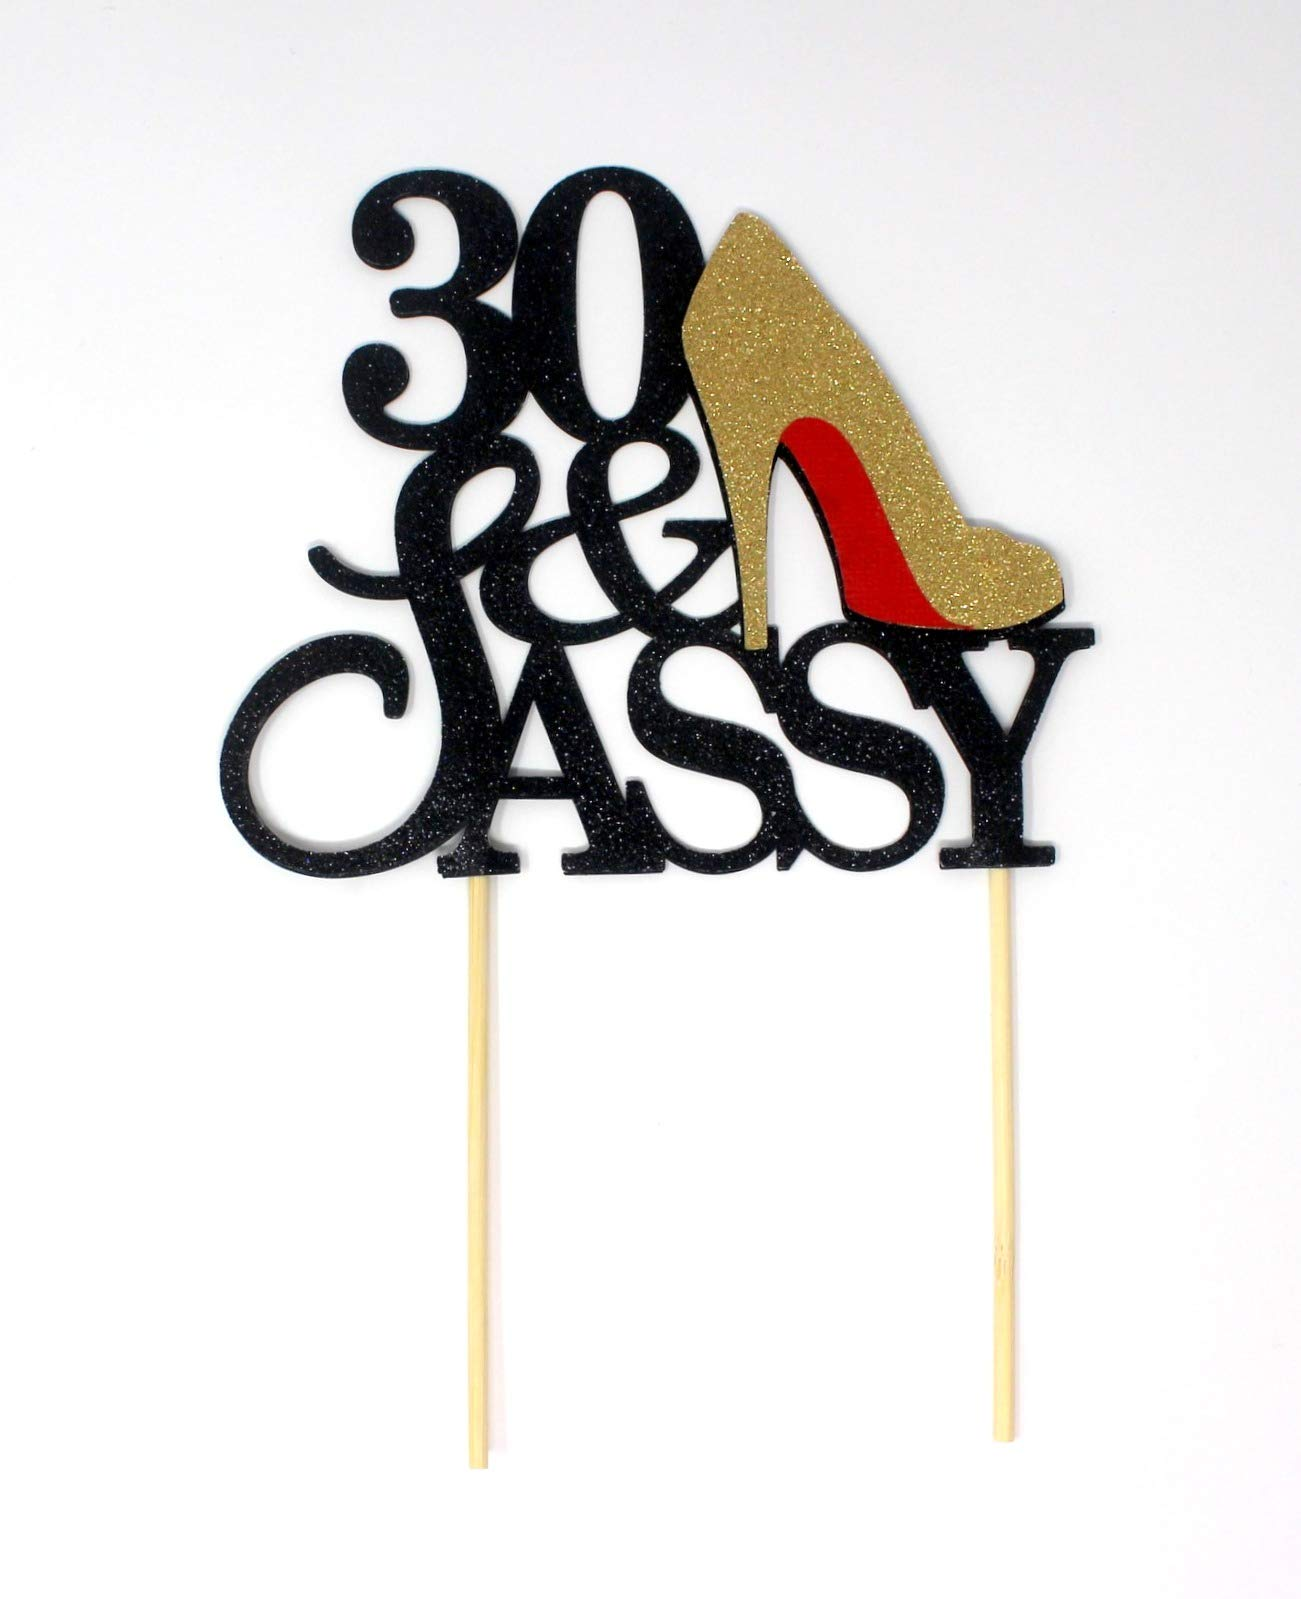 All About Details CAT30SABGO 30 and Sassy Cake Topper (Black and Gold), 6in Wide and 5in Tall with 2-pcs of 4in Wood skewers